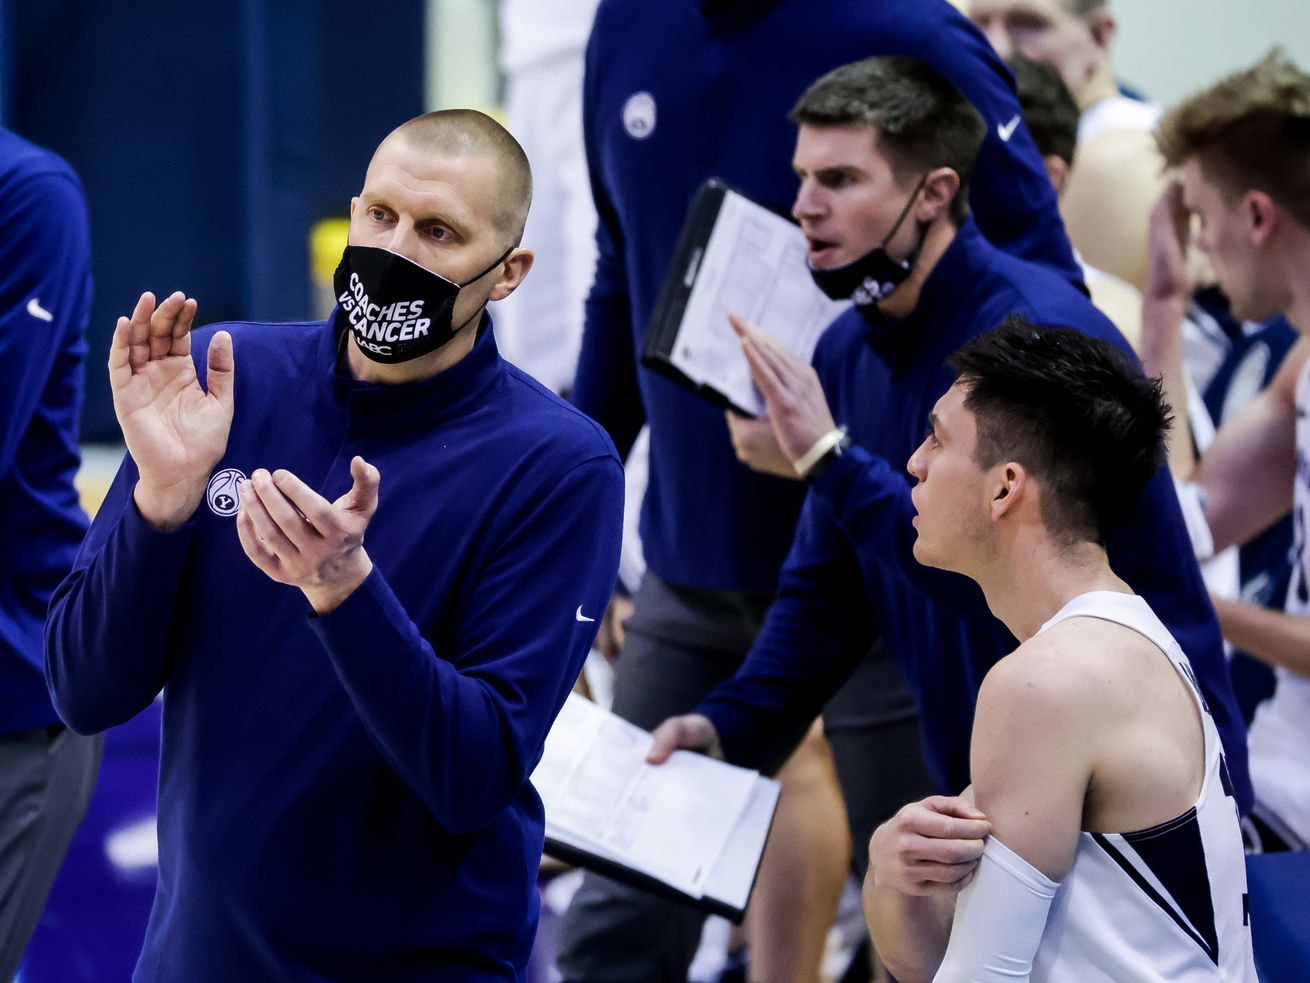 Brigham Young Cougars head coach Mark Pope works the sideline during the game against the Pacific Tigers at the Marriott Center in Provo on Saturday, Jan. 30, 2021.